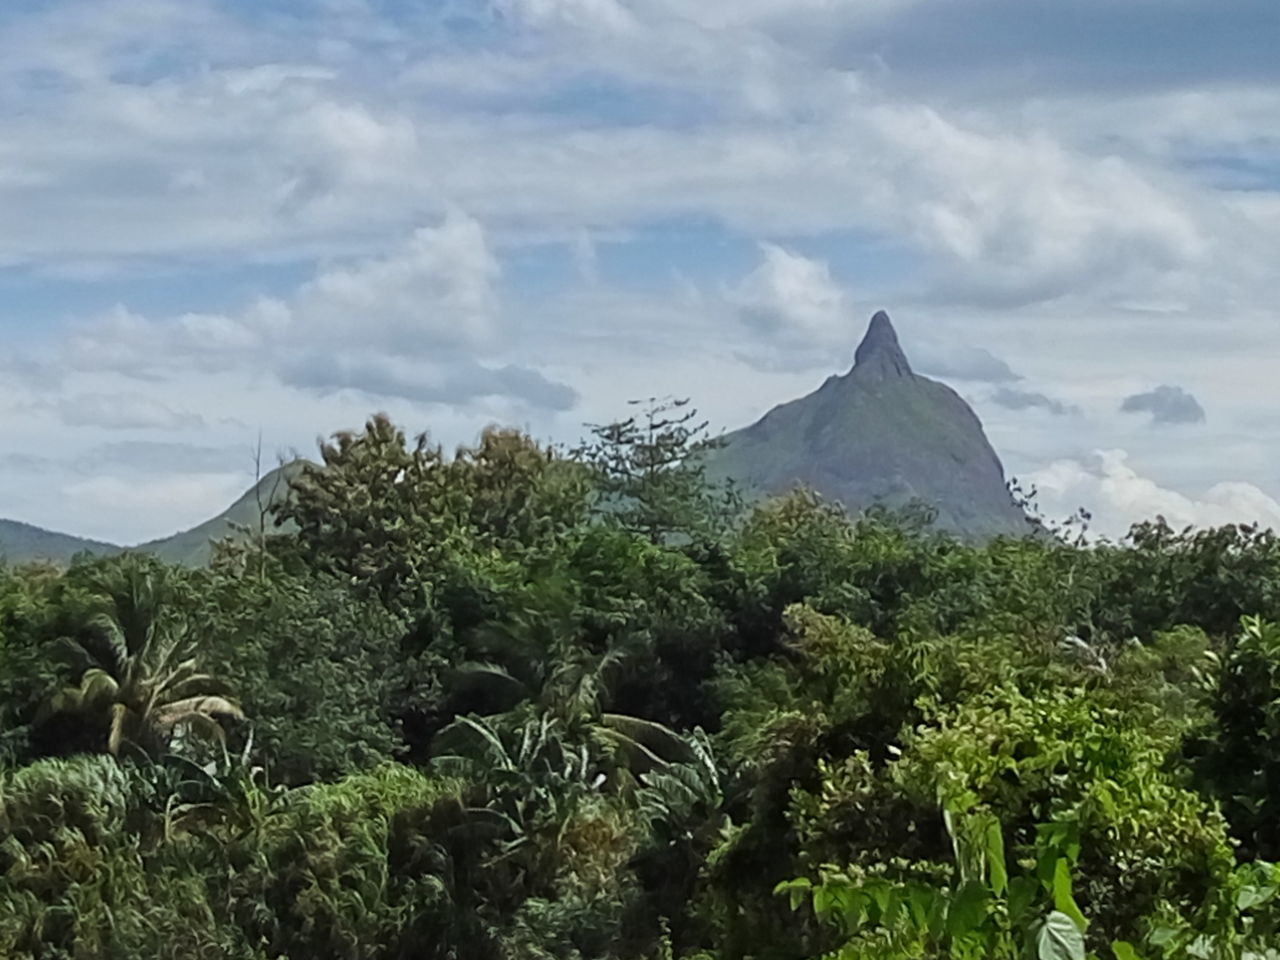 Gunung Jempol (Thumb up Mountain) South Sumatra, Indonesia Mountain Landscape Nature No People Outdoors INDONESIA Finding New Frontiers